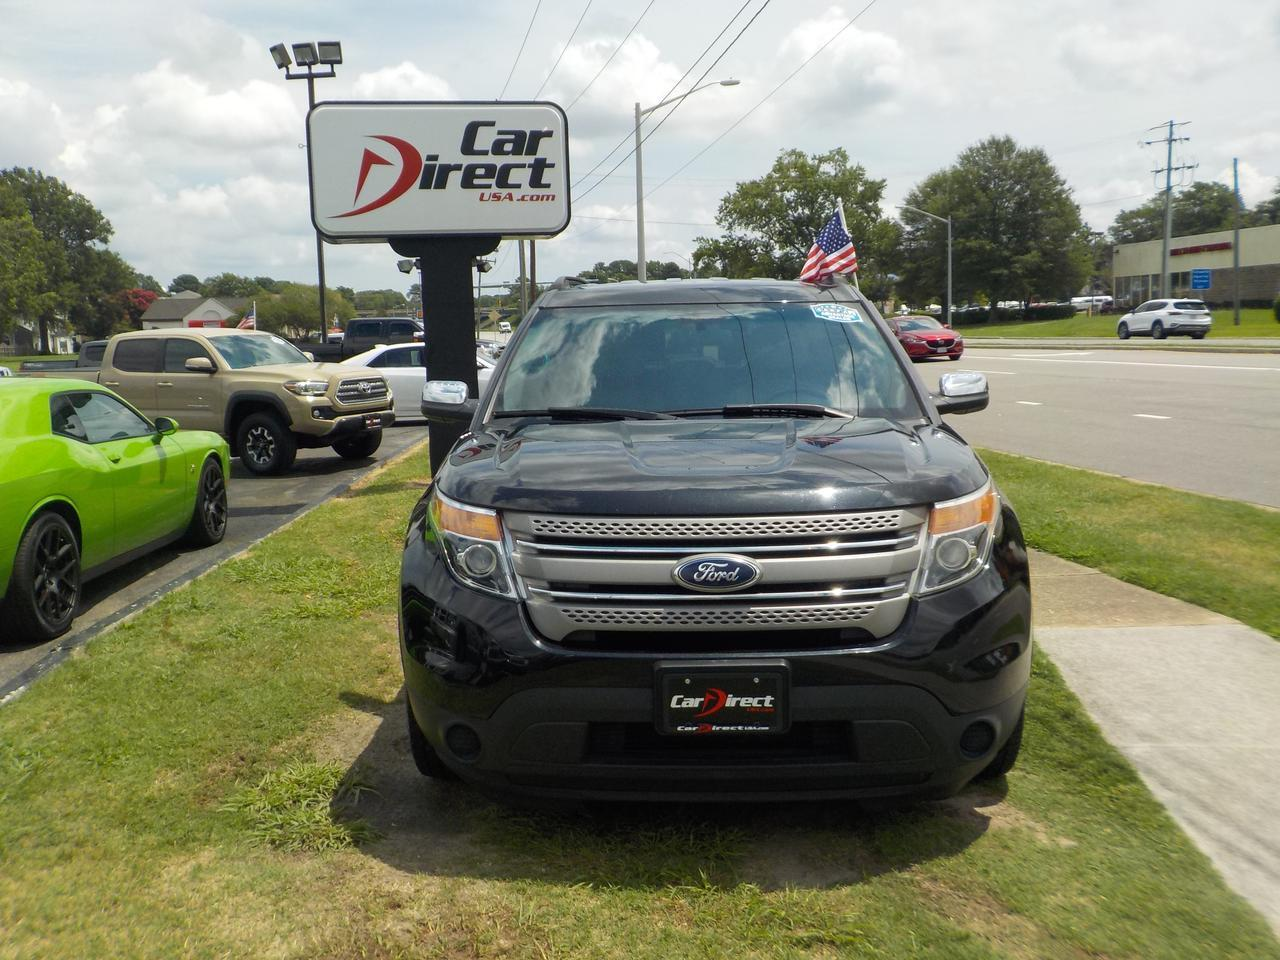 2014 FORD EXPLORER FWD, ROOF RACKS, 3RD ROW SEATING, AUTOMATIC HEADLIGHTS, KEYLESS ENTRY, TOW, AUXILIARY PORT! Virginia Beach VA